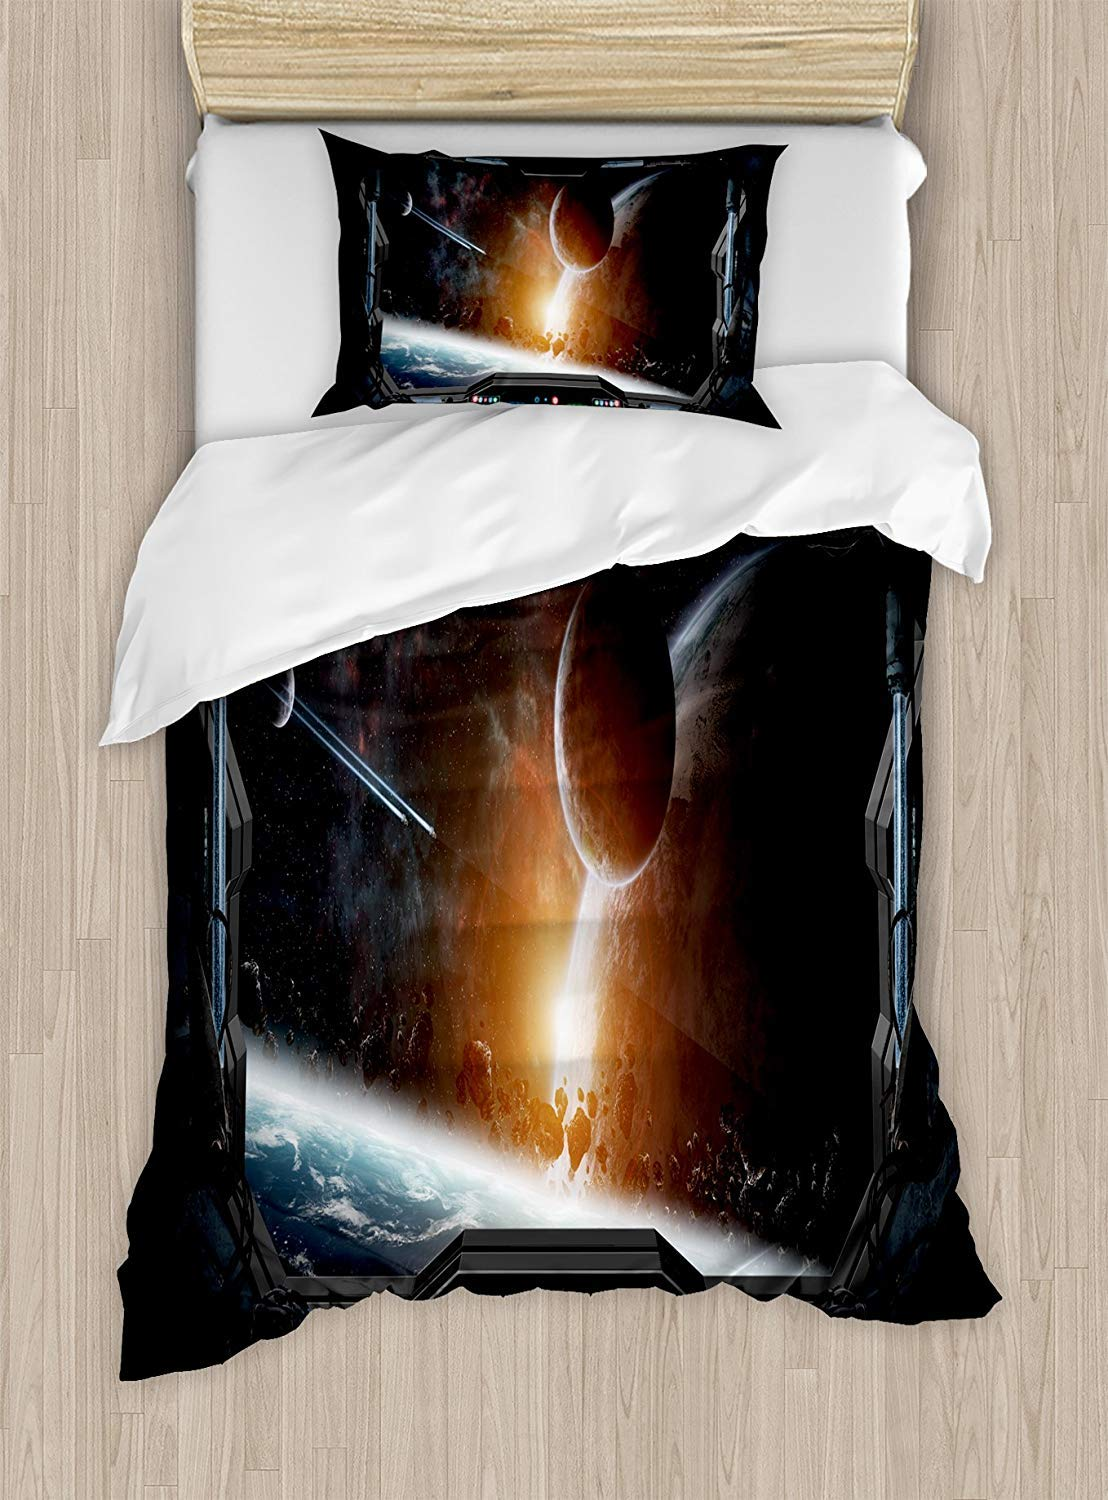 Big buy store Outer Space Duvet Cover, Scenery of Planets from The Window of a Shuttle Bodies Astronaut Space Station, Decorative 4 Piece Bedding Set with 2 Pillow Sham, Gray Orange(Twin)